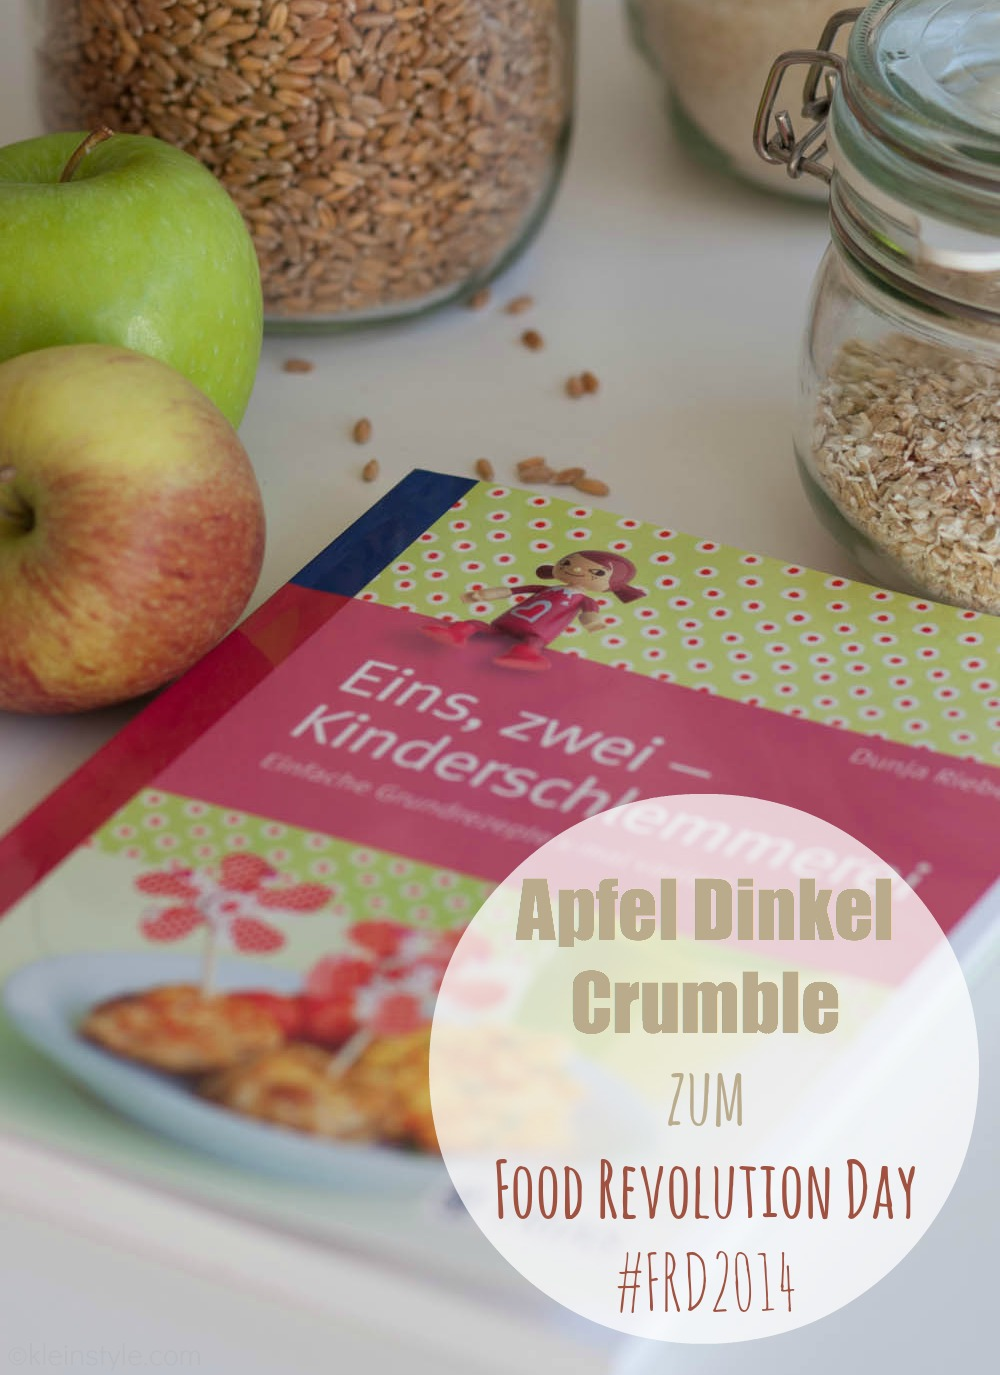 Food Revolution Day : Kocht mit euren Kindern! {Apfel-Dinkel-Crumble}